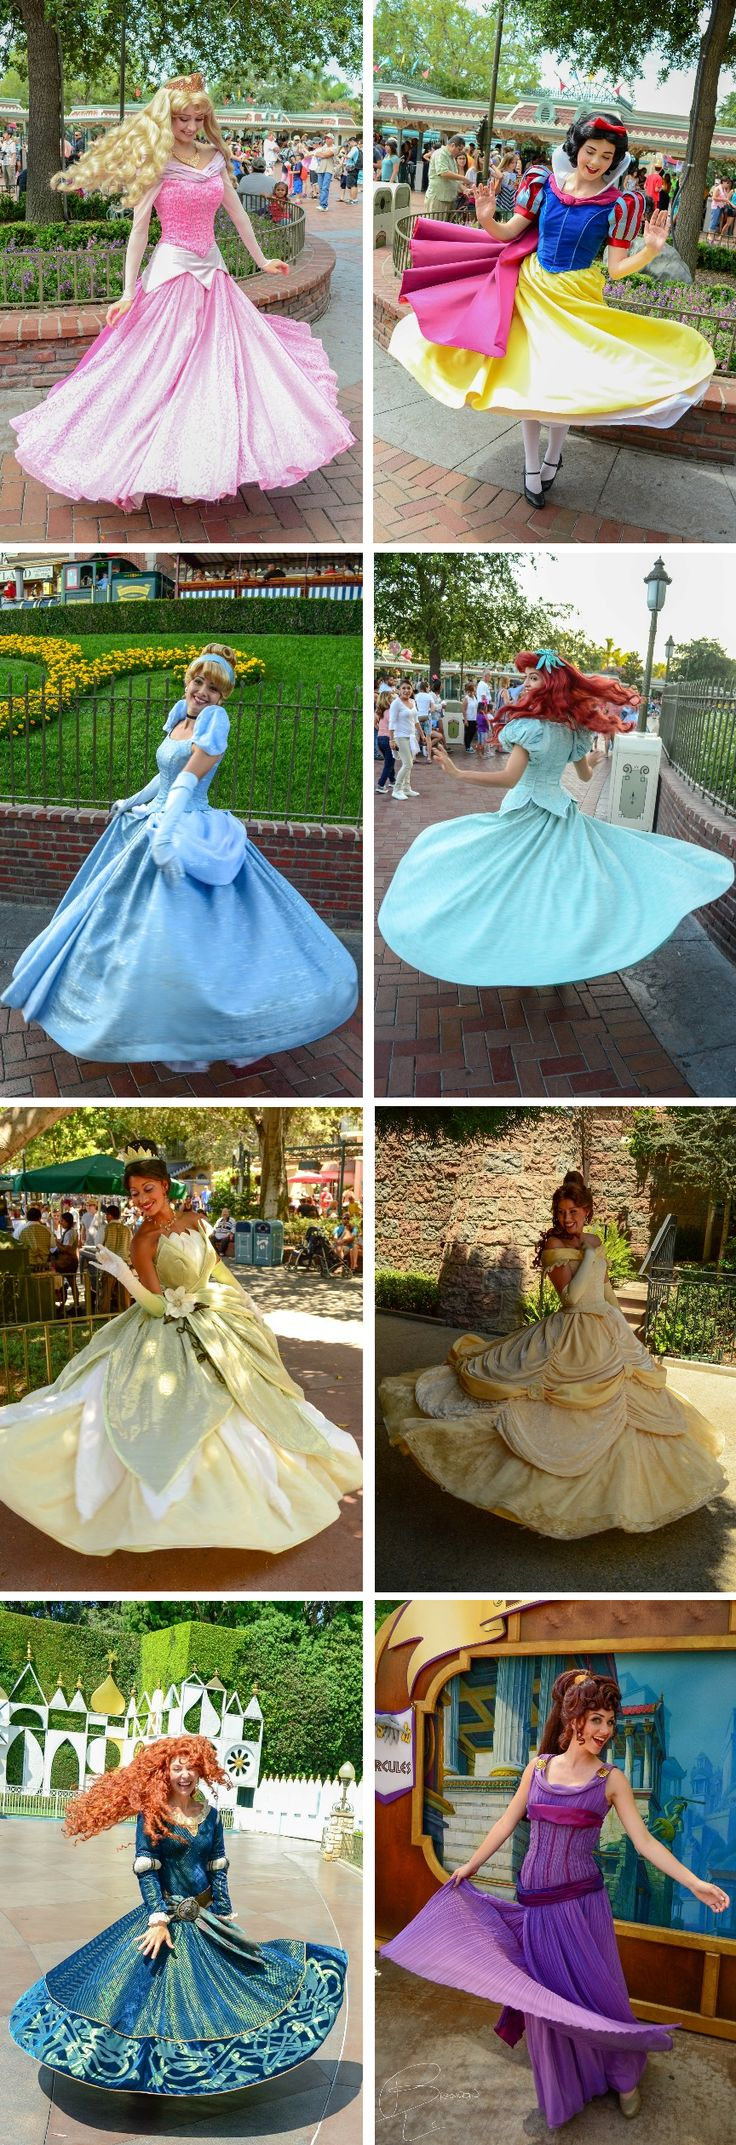 """""""Can you twirl for us?"""" - Aurora, Snow White, Cinderella, Ariel, Tiana, Belle, Merida  Meg.  THEY EVEN TWIRL IN CHARACTER"""